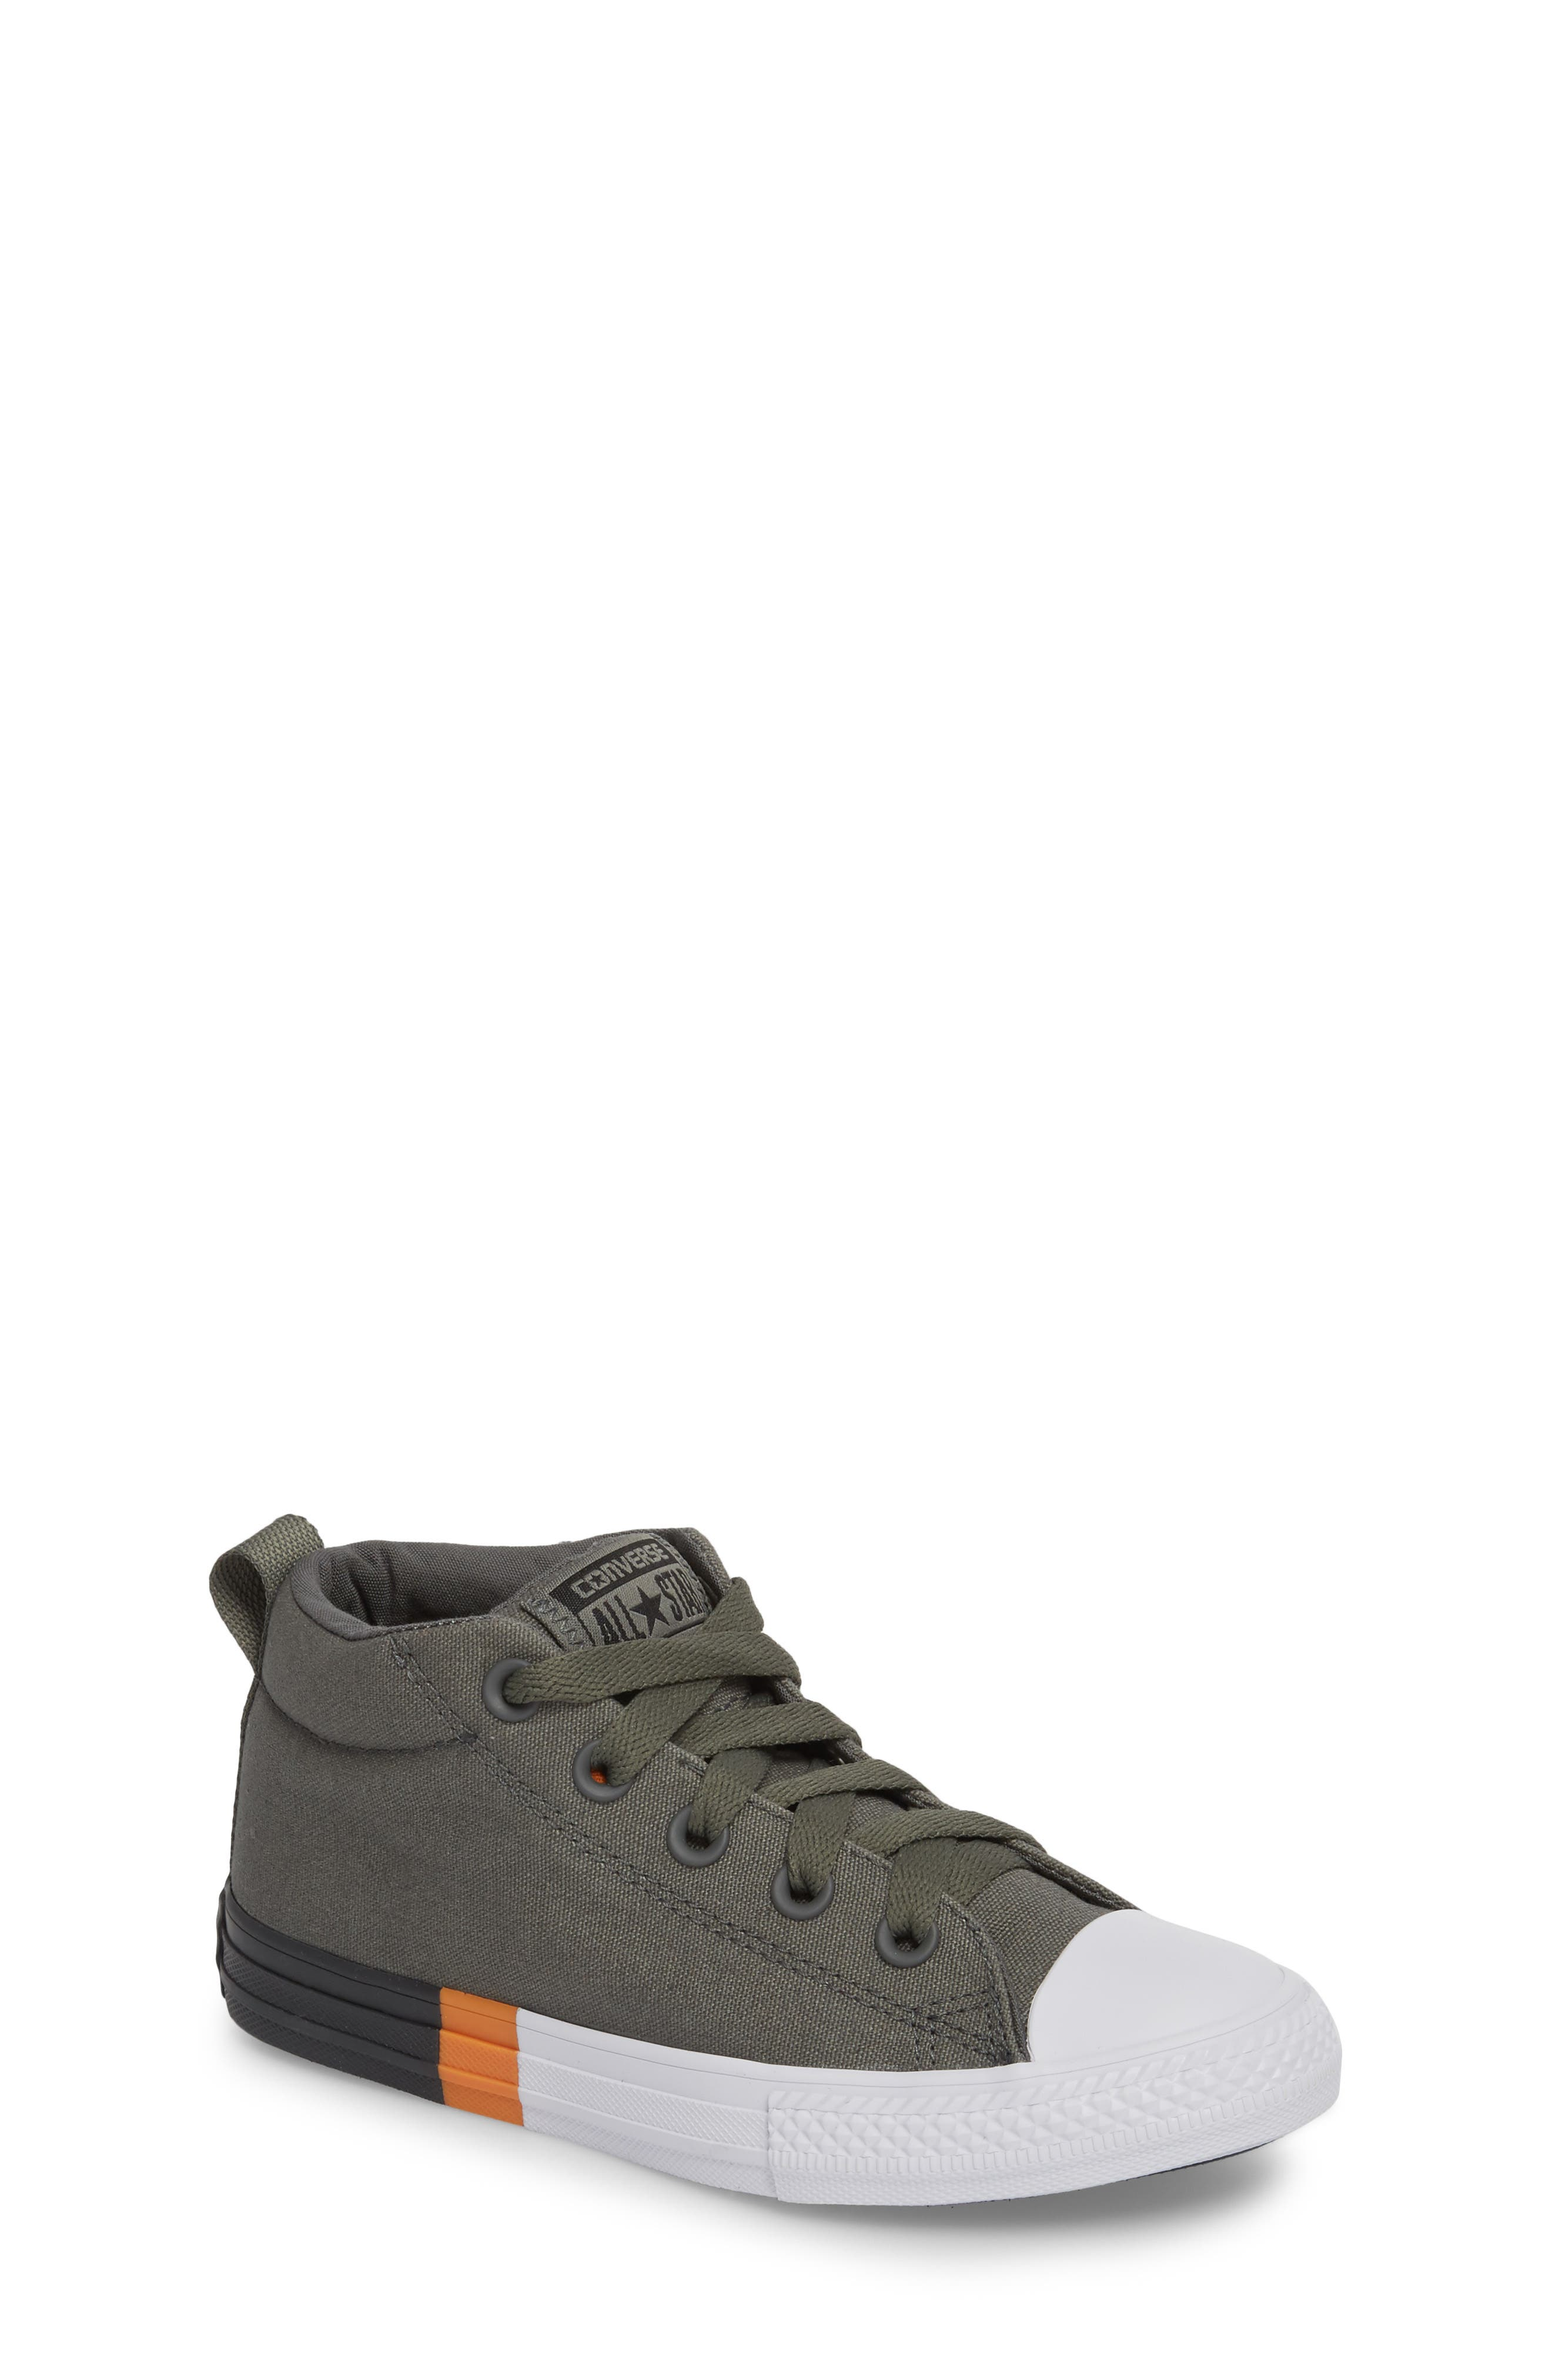 Chuck Taylor<sup>®</sup> All Star<sup>®</sup> Street Colorblock Mid Top Sneaker,                             Main thumbnail 1, color,                             088